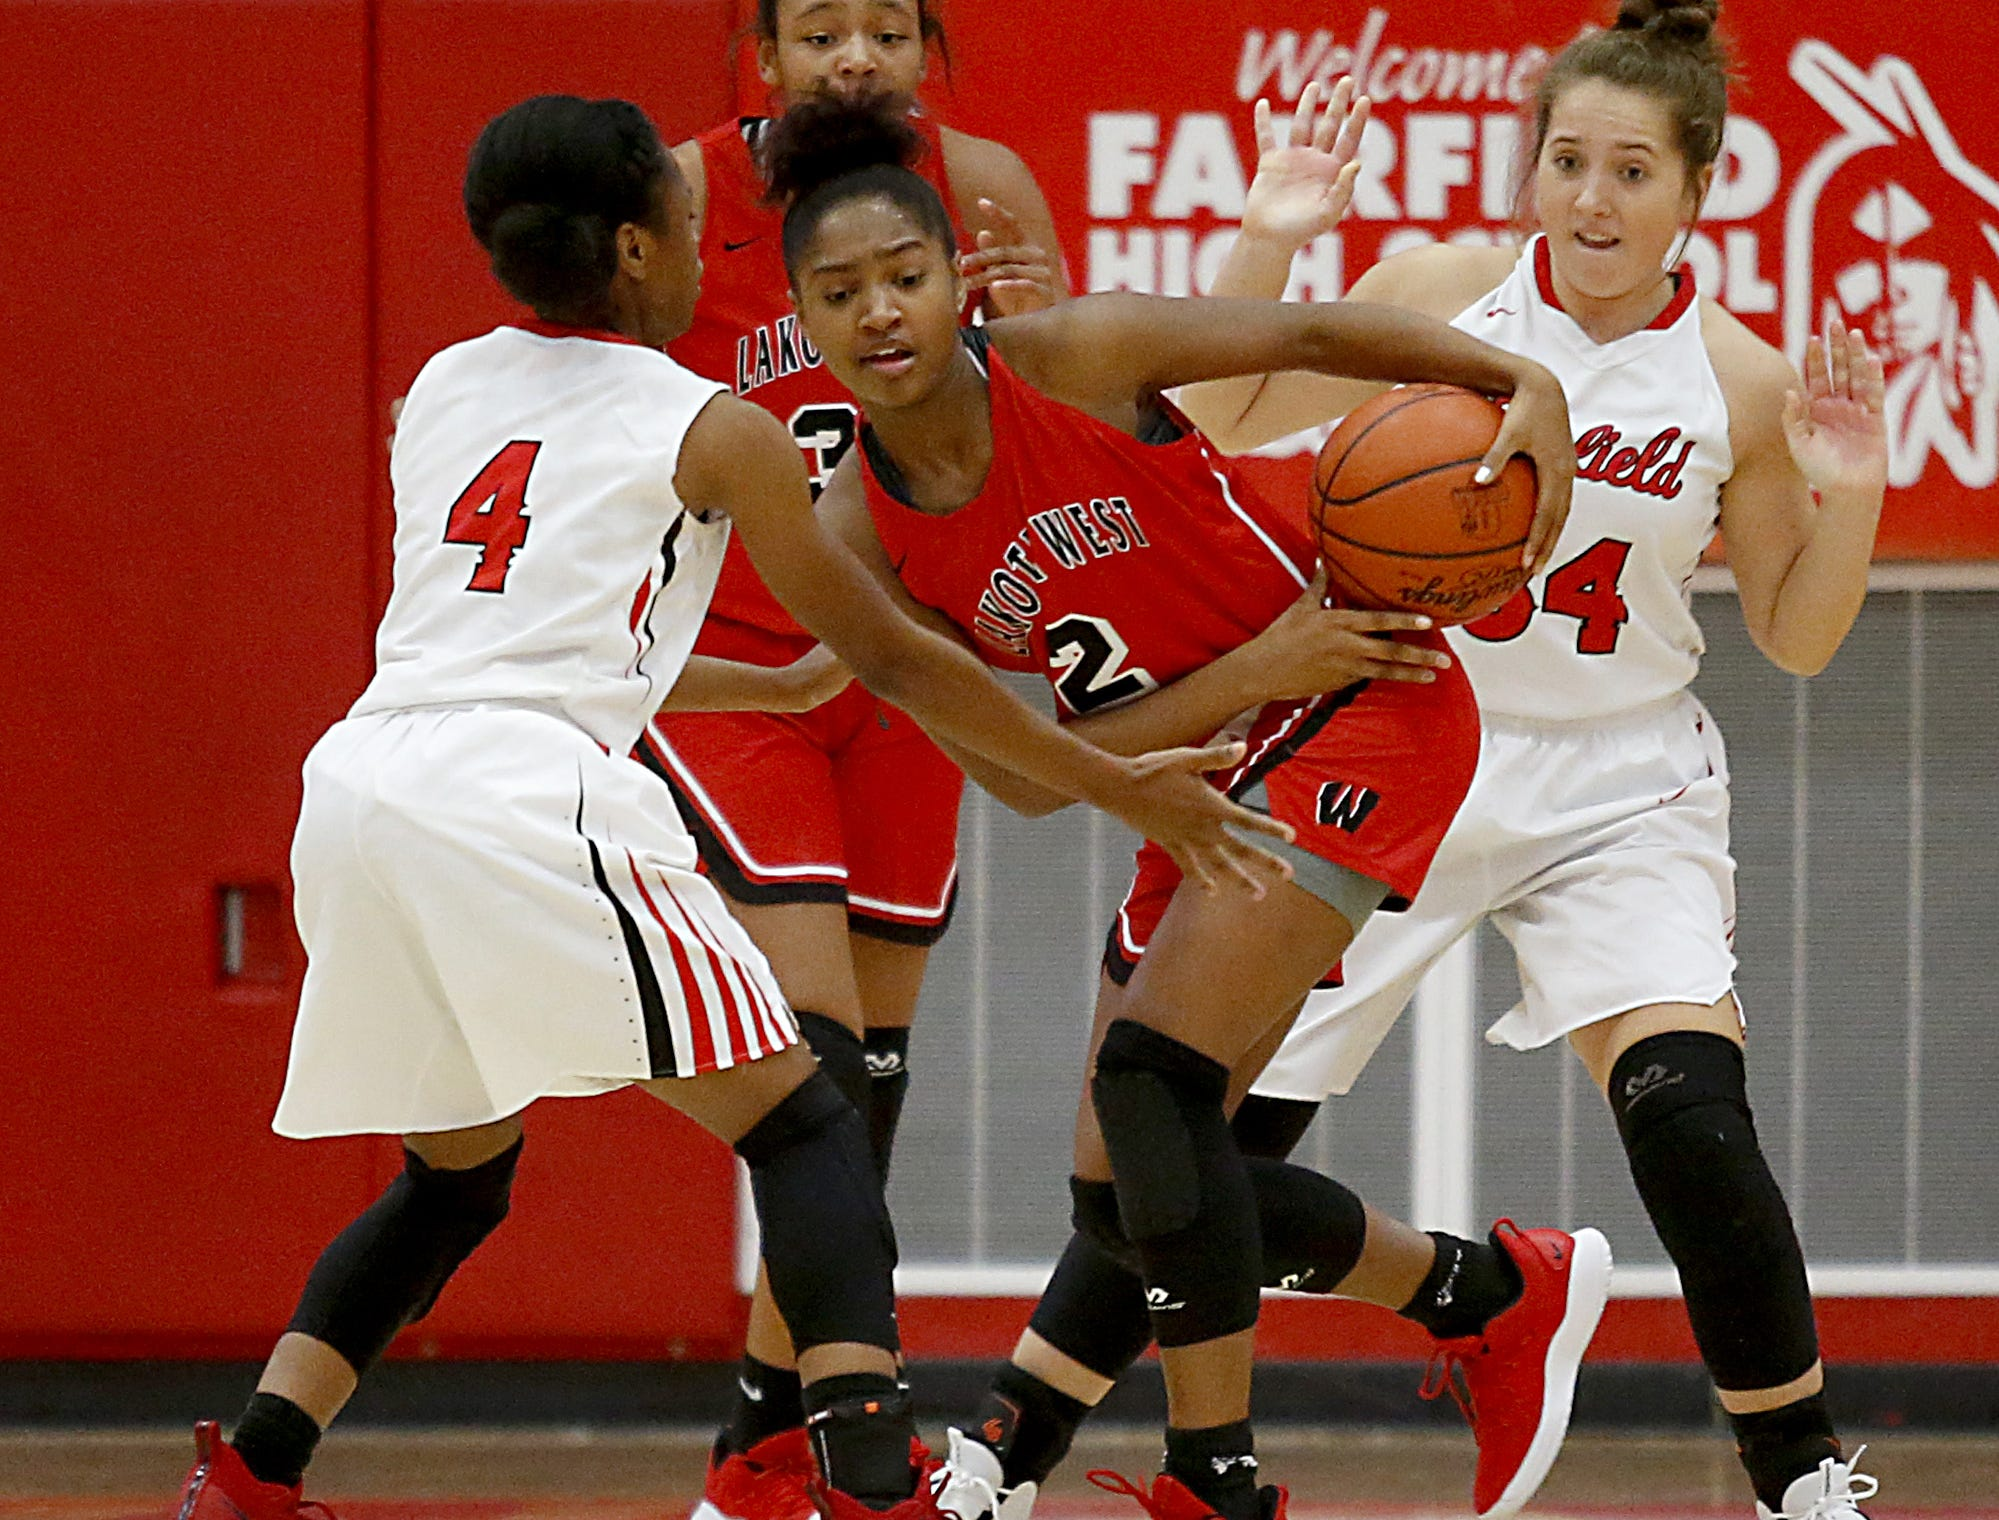 Fairfield guard Zahrya Bailey tries to steal from Lakota West guard Chance Gray during their game at Fairfield Saturday, Dec. 1, 2018.